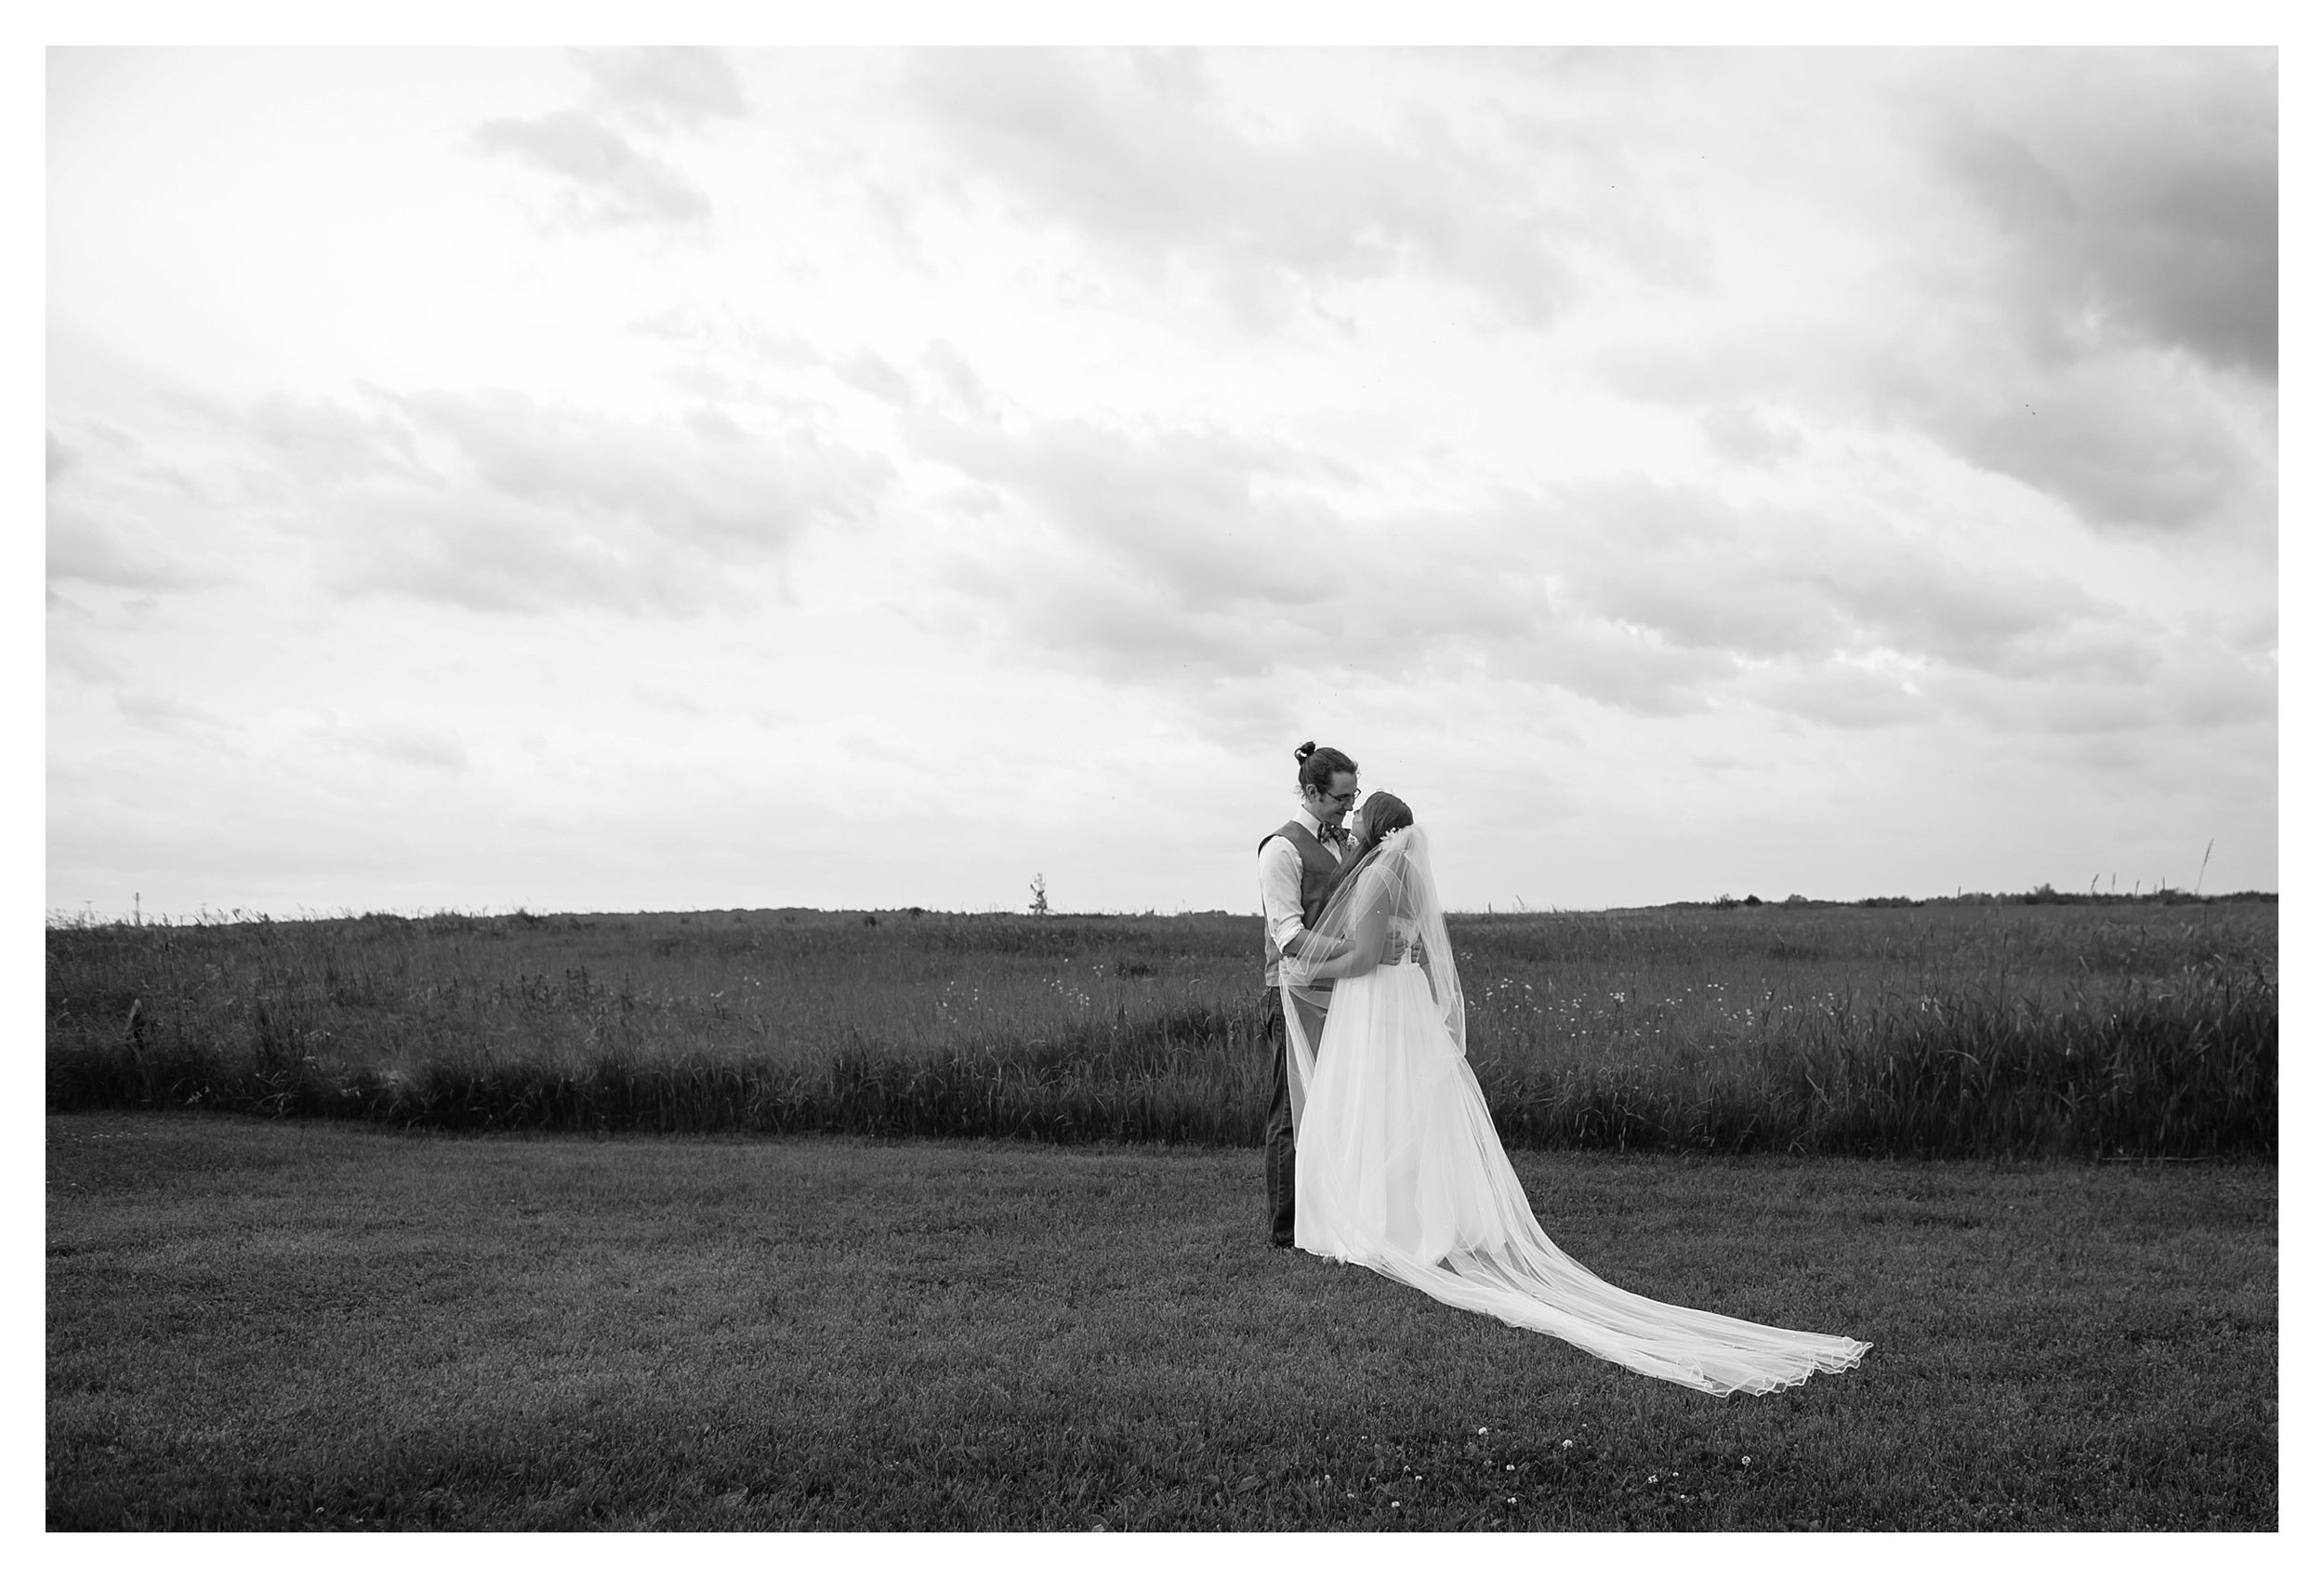 ps 139 photography jen jensen freehands farm wedding storm sunset-0775.jpg